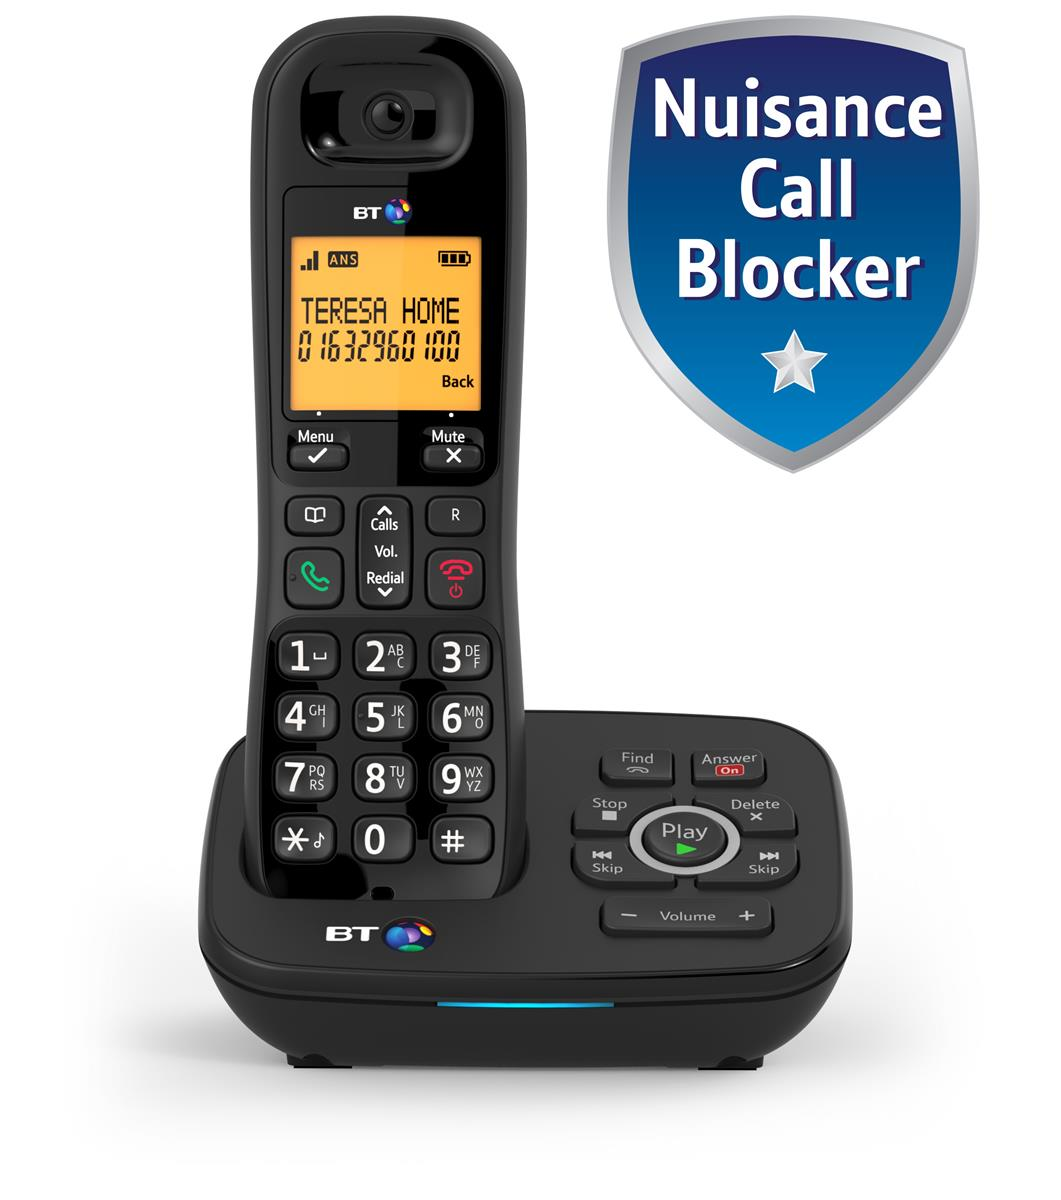 Image for BT 1700 Dect Telephone Nuisance-call Blocking Single Ref 57399